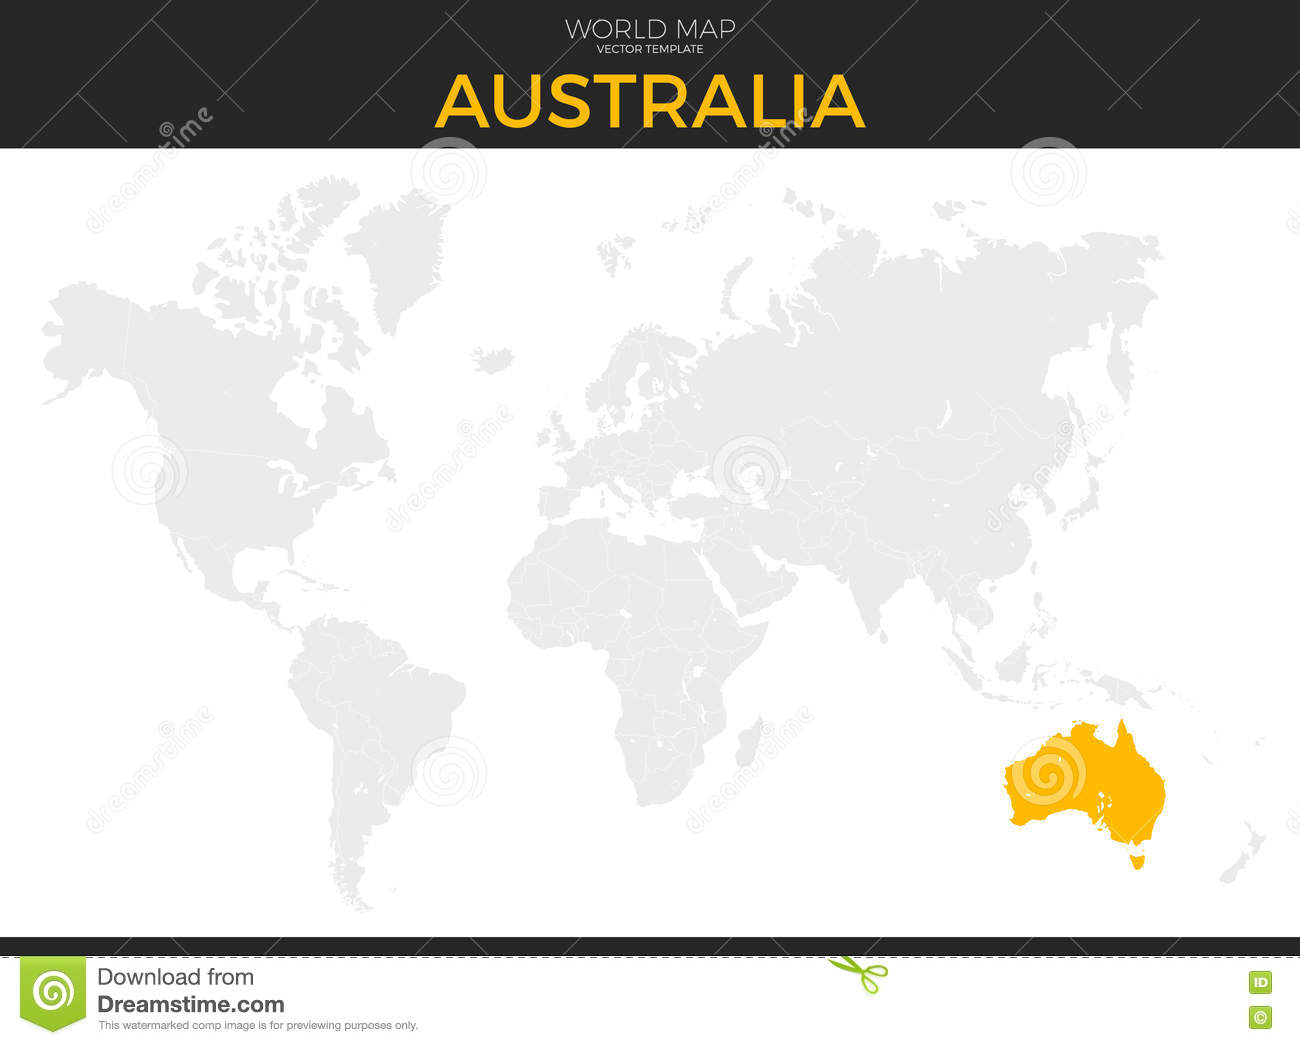 Australia Location Map.Commonwealth Of Australia Location Map Stock Vector Illustration